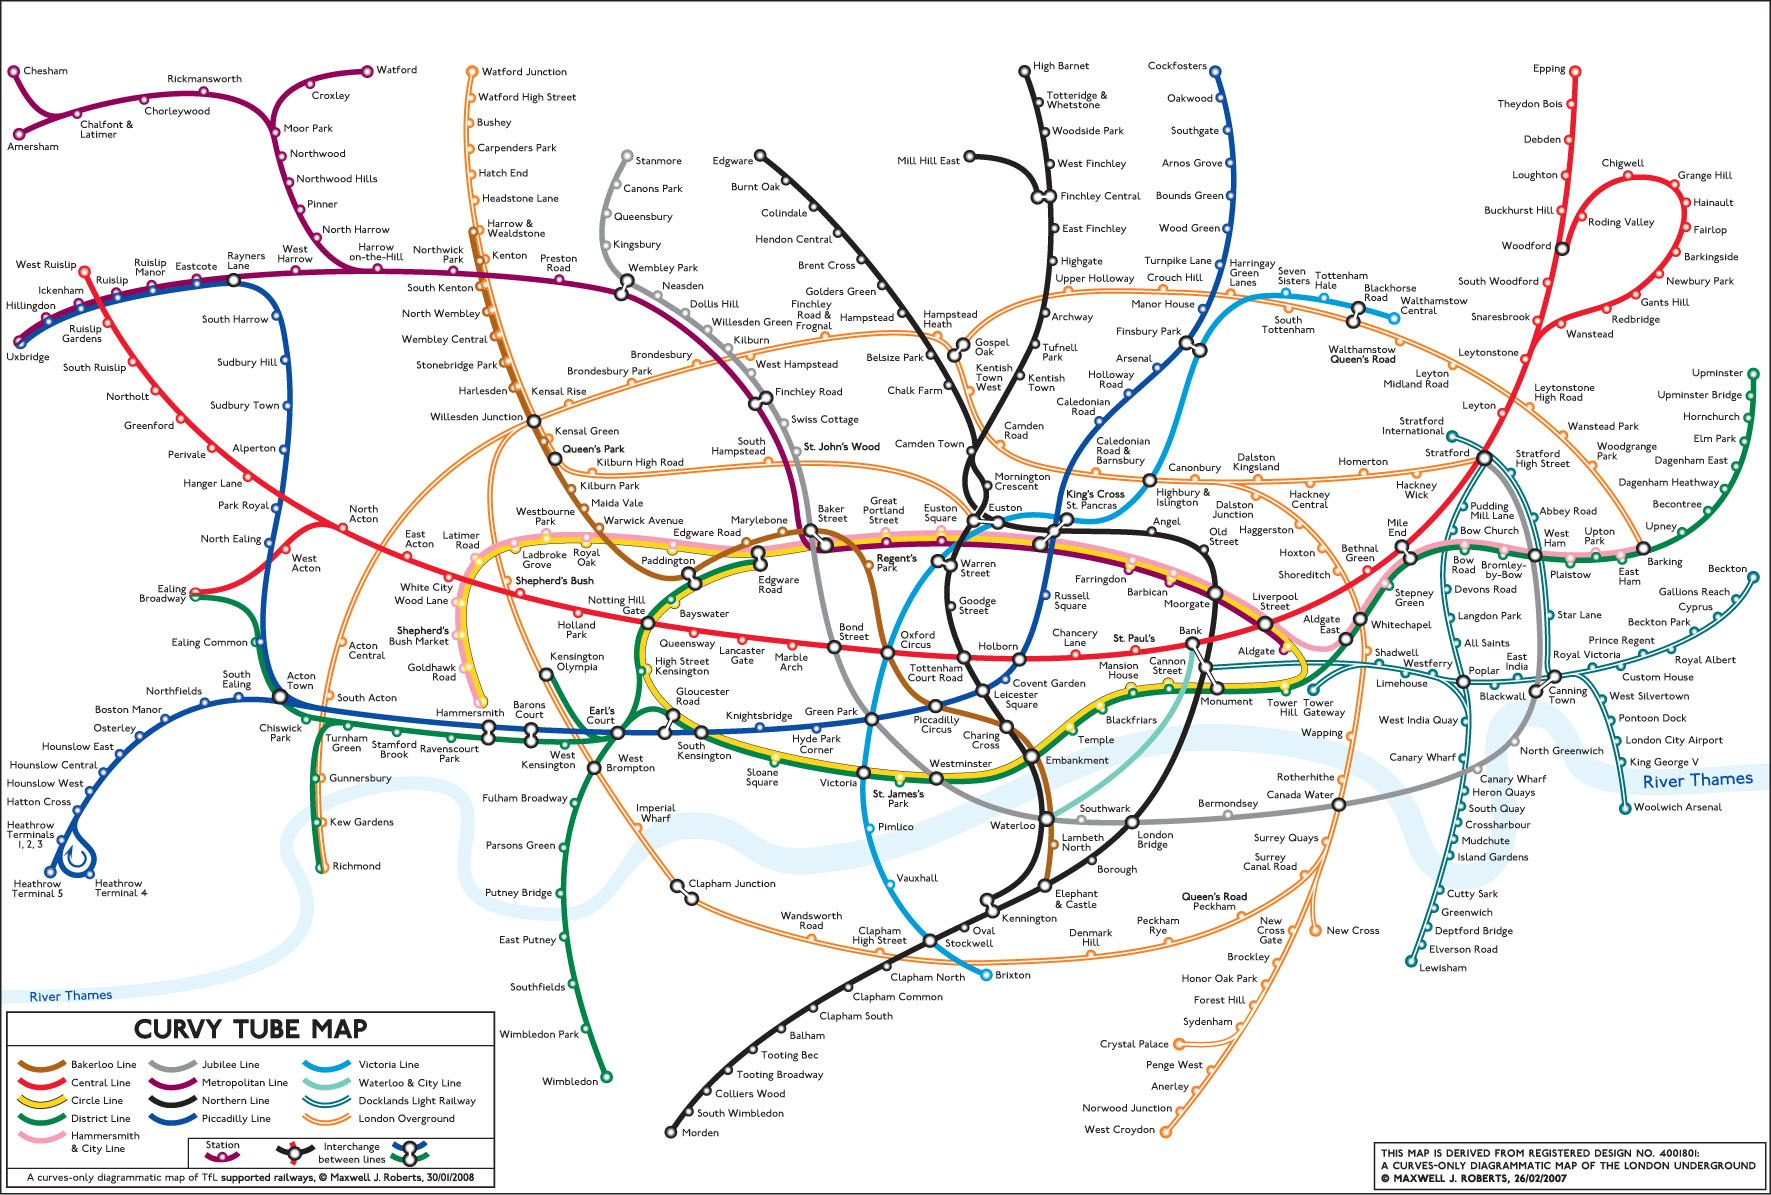 Curvy Tube Map A curvesonly diagrammatic map of TfL supported – Real London Underground Map